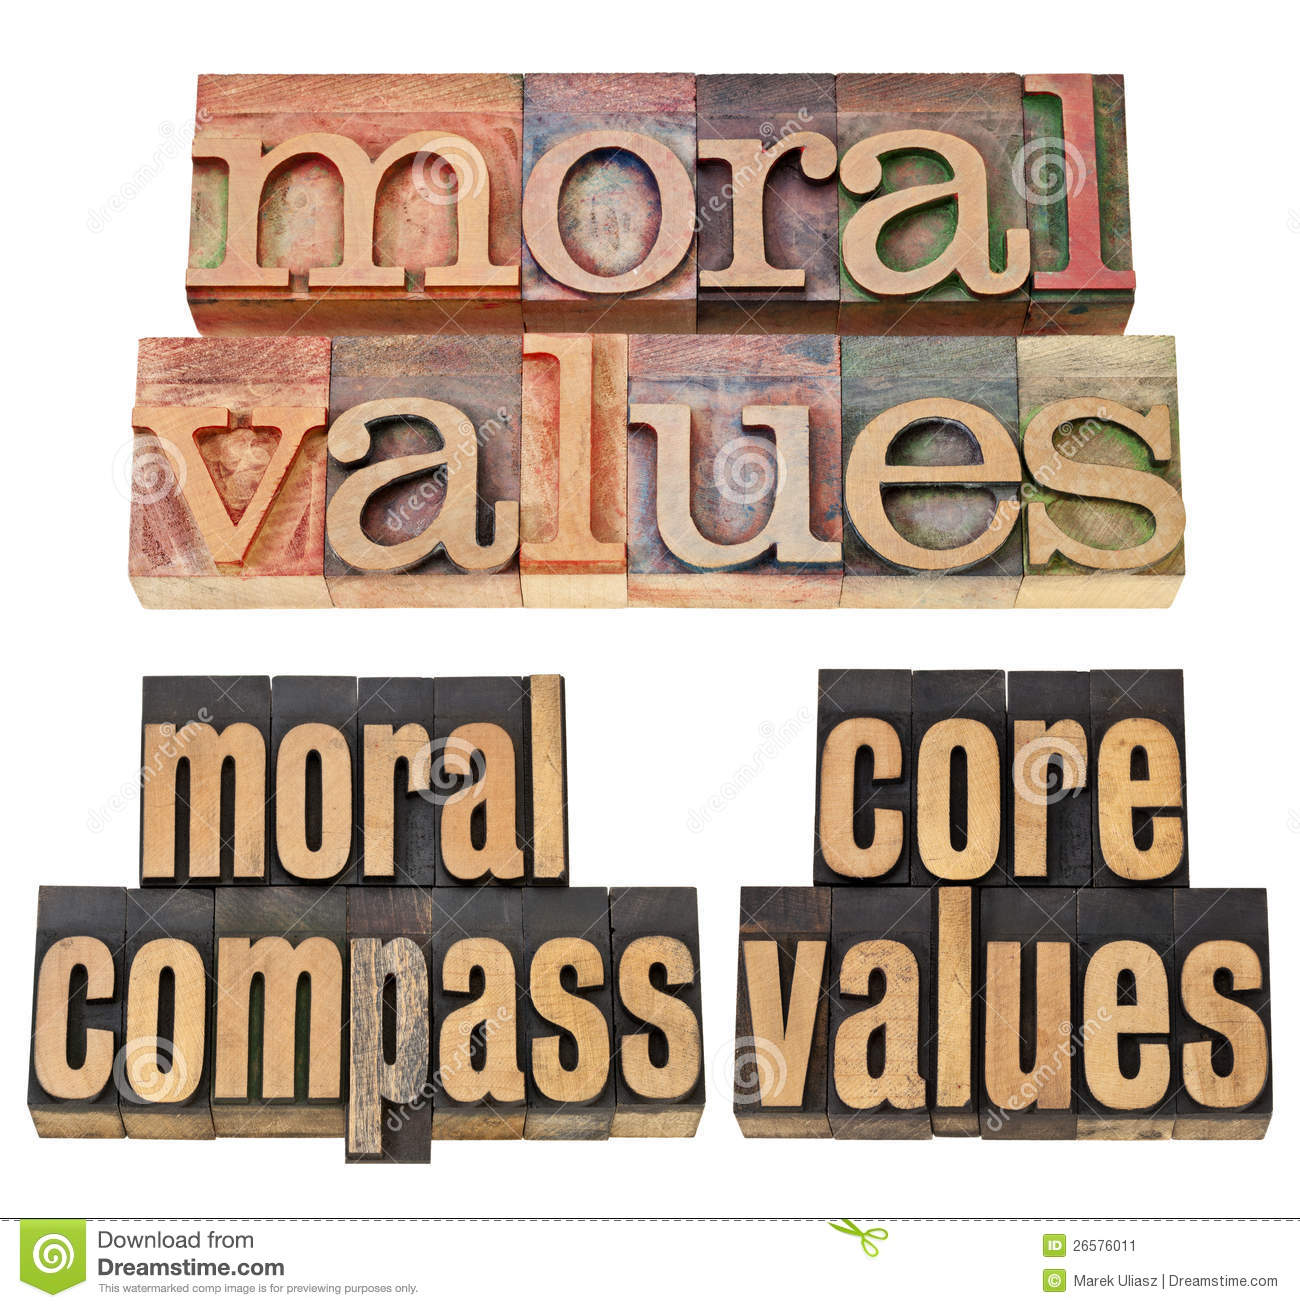 Moral Values Moral Compass Core Values   Ethics Concept   A Collage